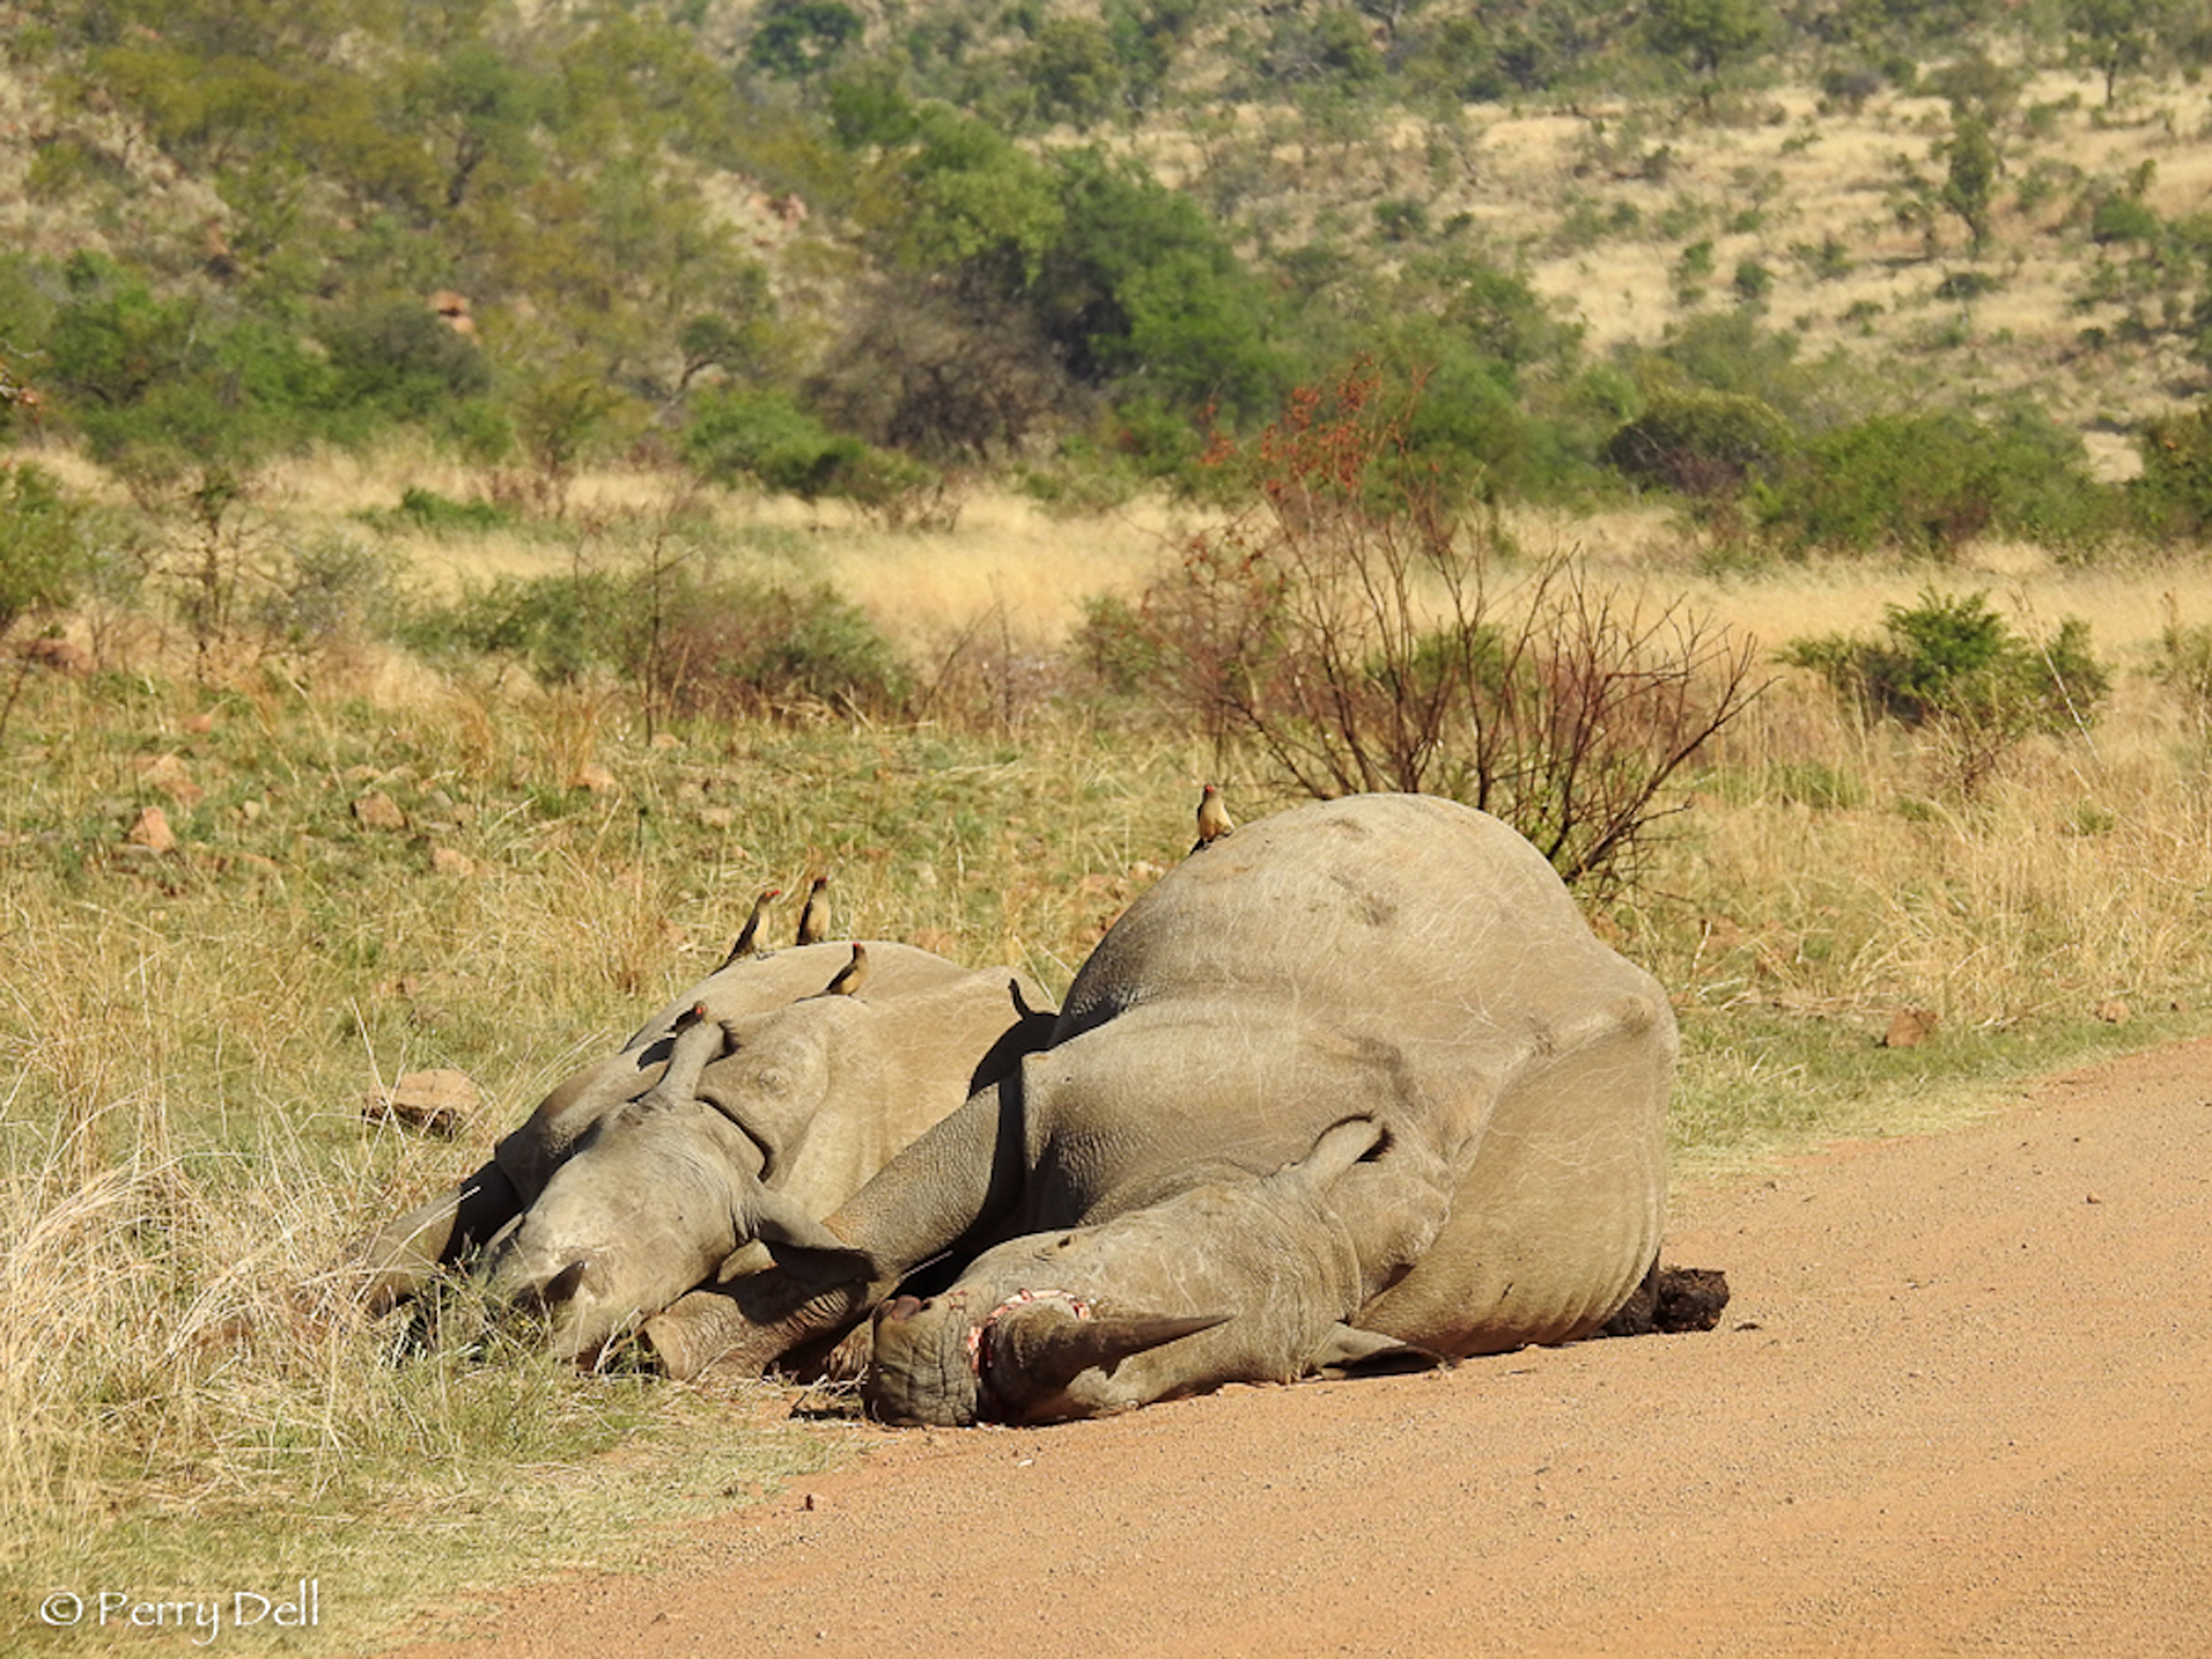 Poaching is a big contributor to the extinction of wild animals. Credit: PA